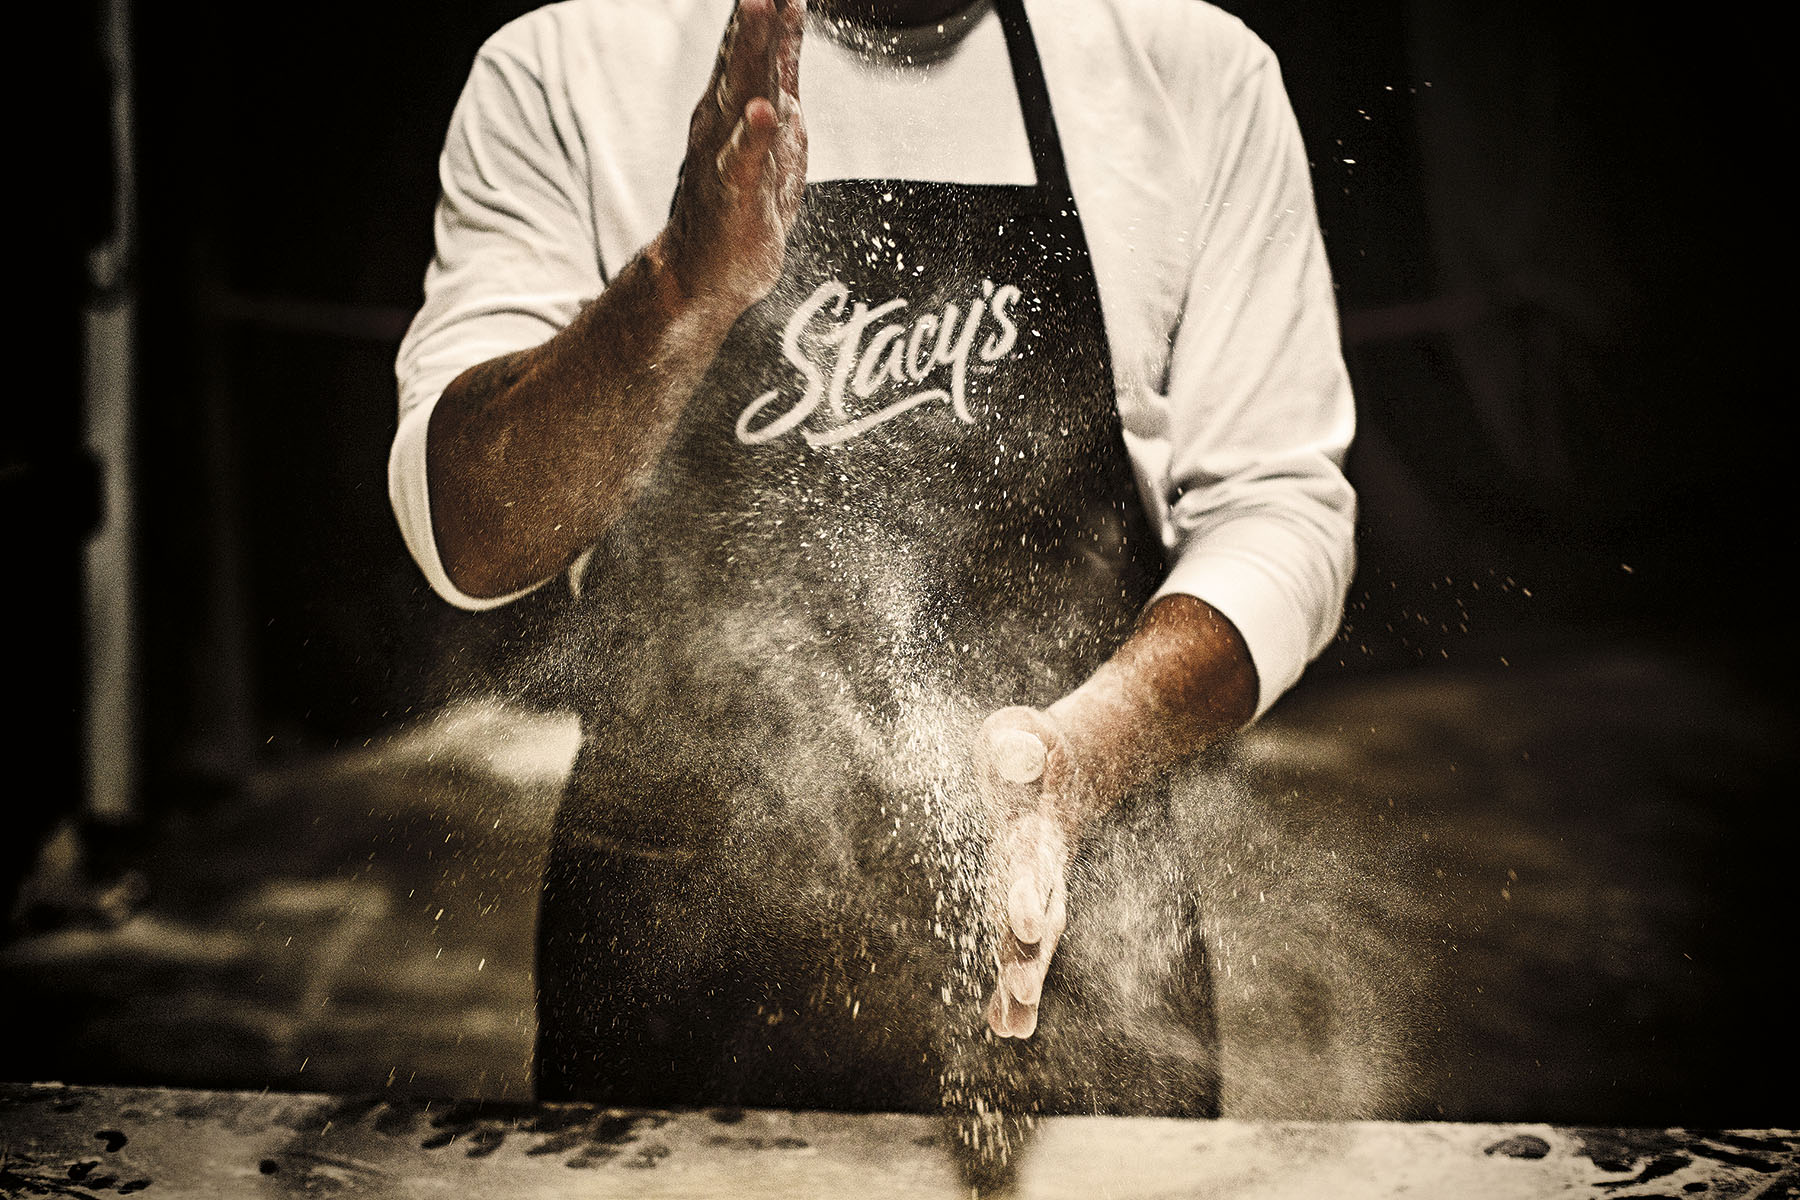 Chef at Stacys Pita Chips Factory | Dovis Bird Agency Photography